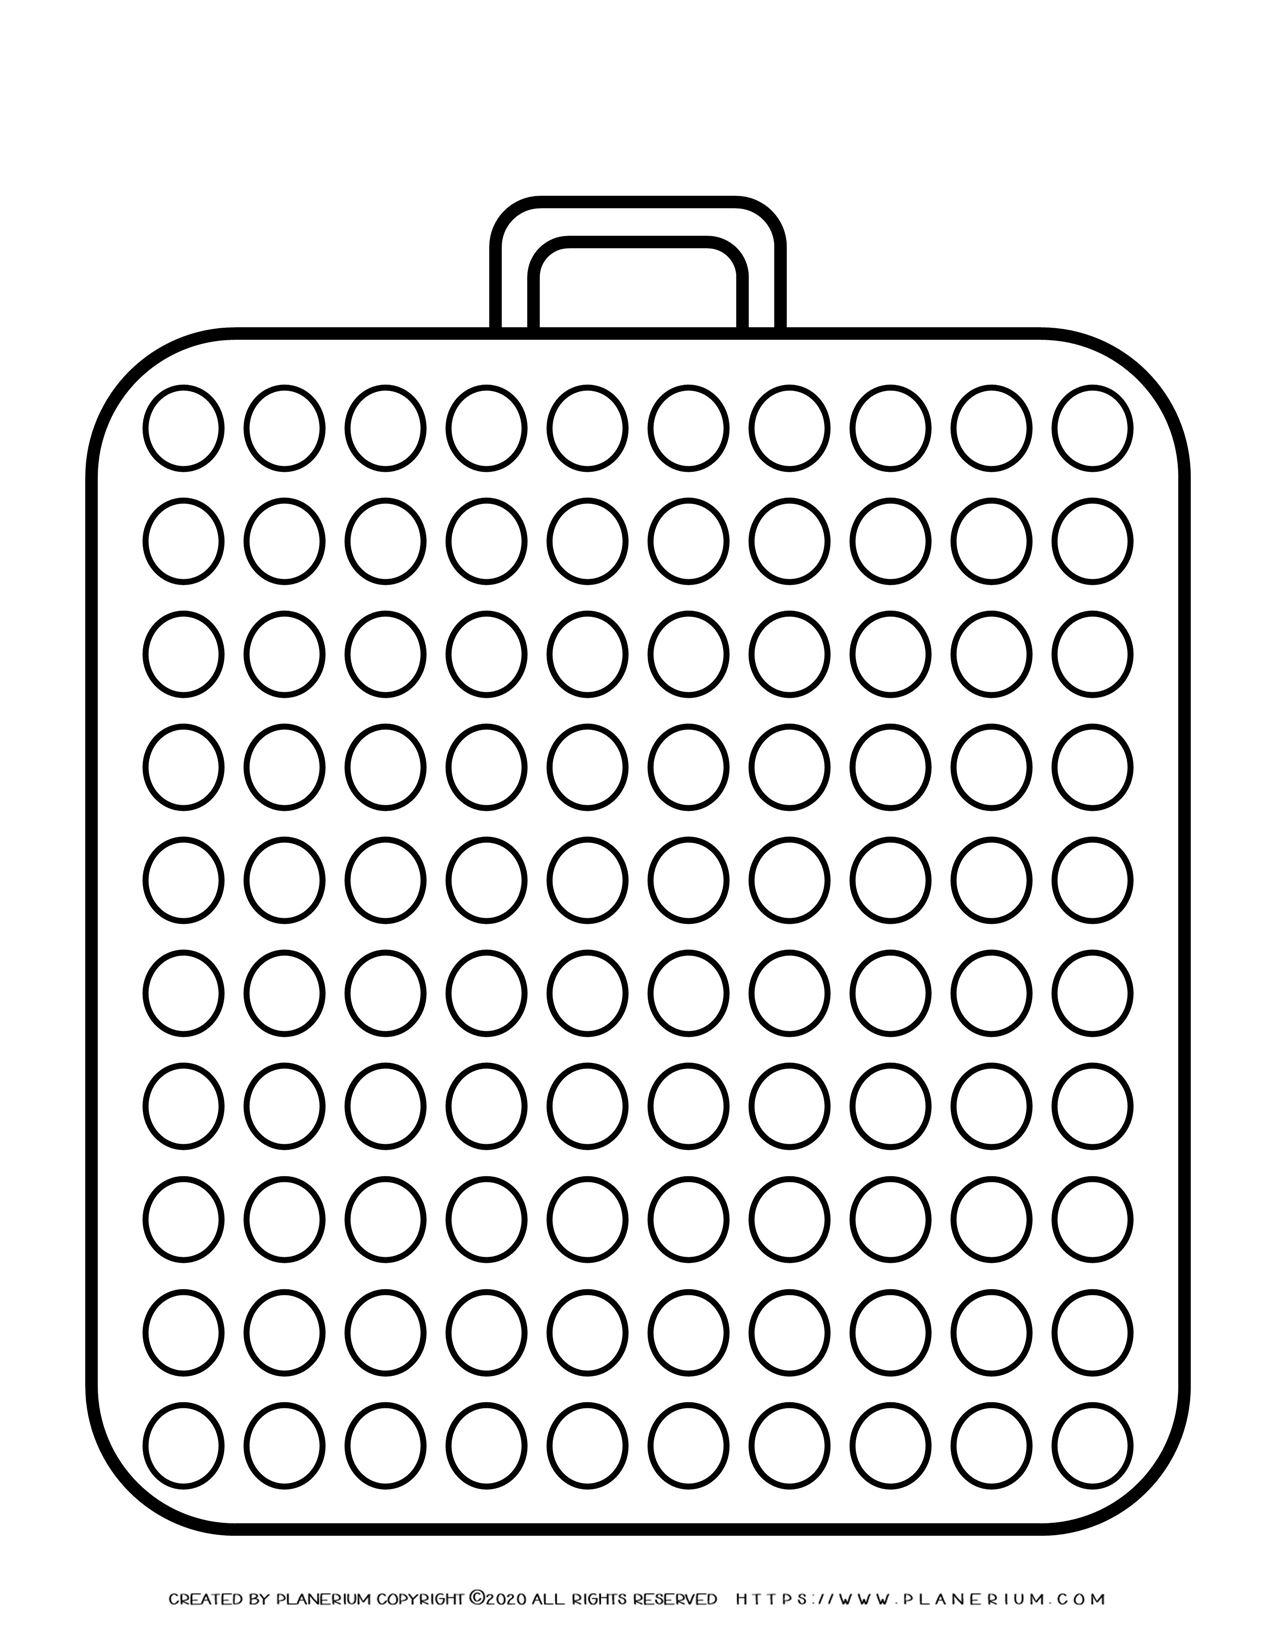 Templates - Big Suitcase With a Hundred Circles | Planerium